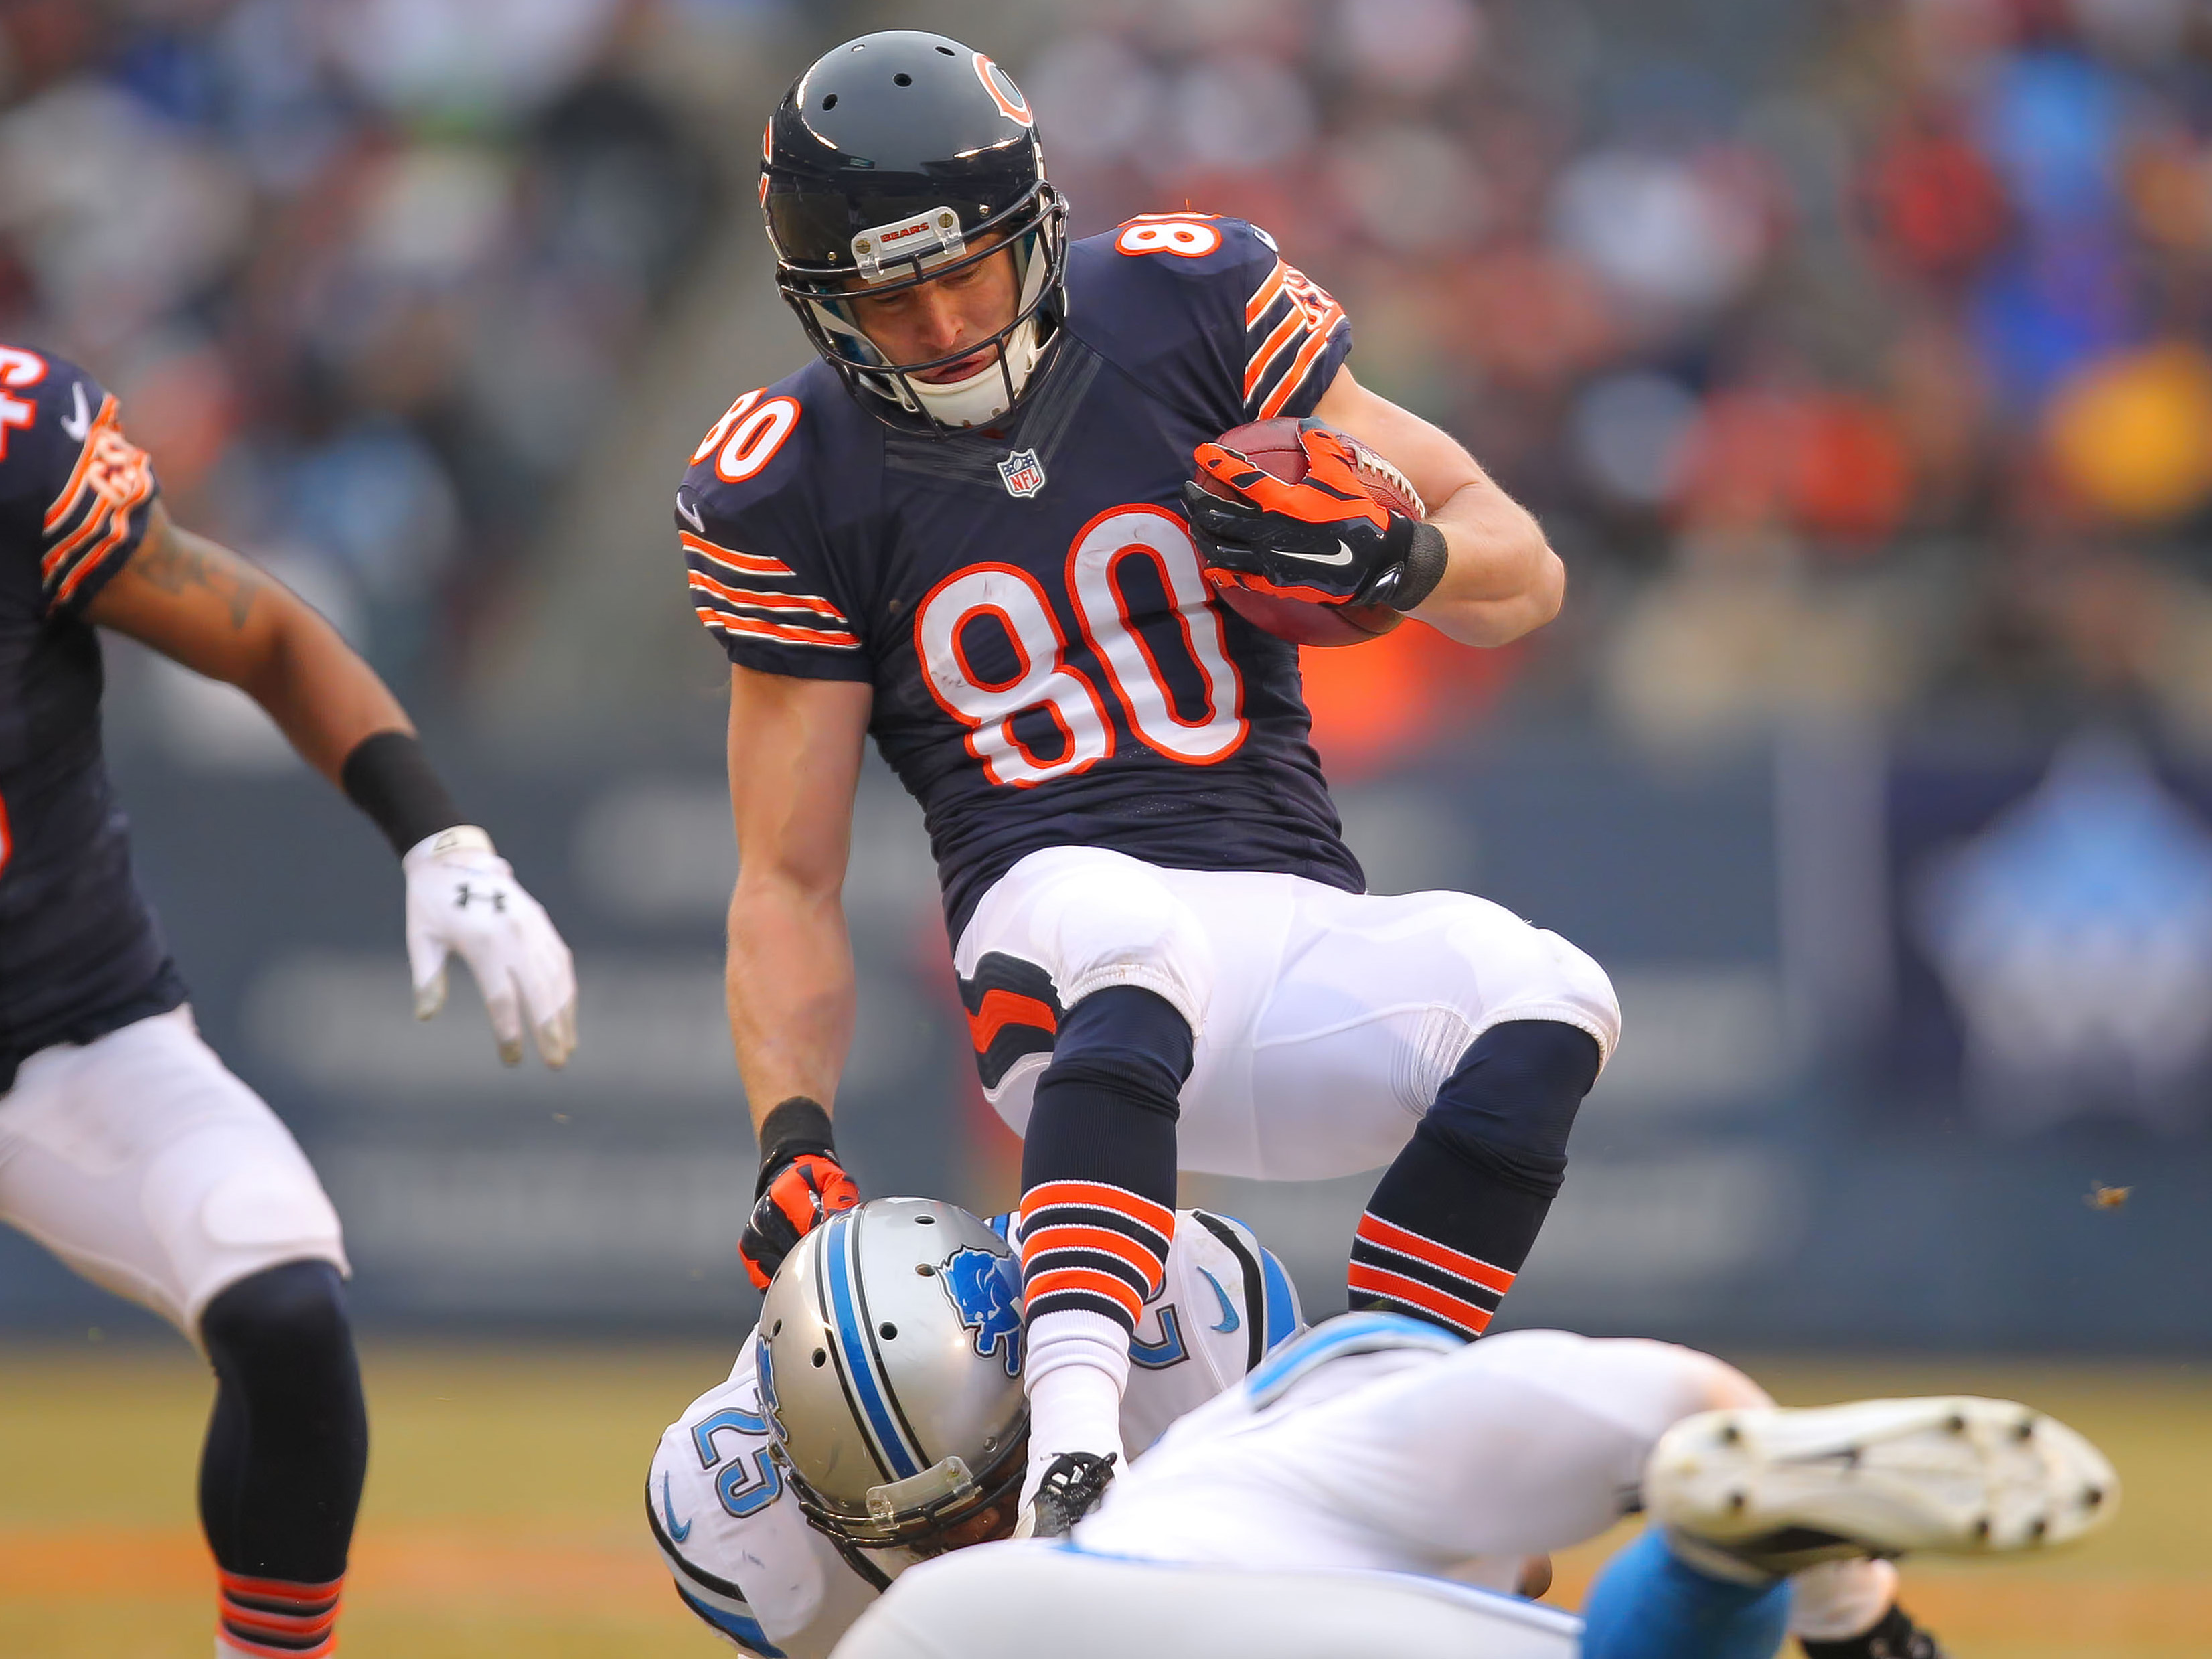 Jerseys NFL Online - The Bears Den: June 12, 2015 - OTAs Chicago Bears news & notes ...